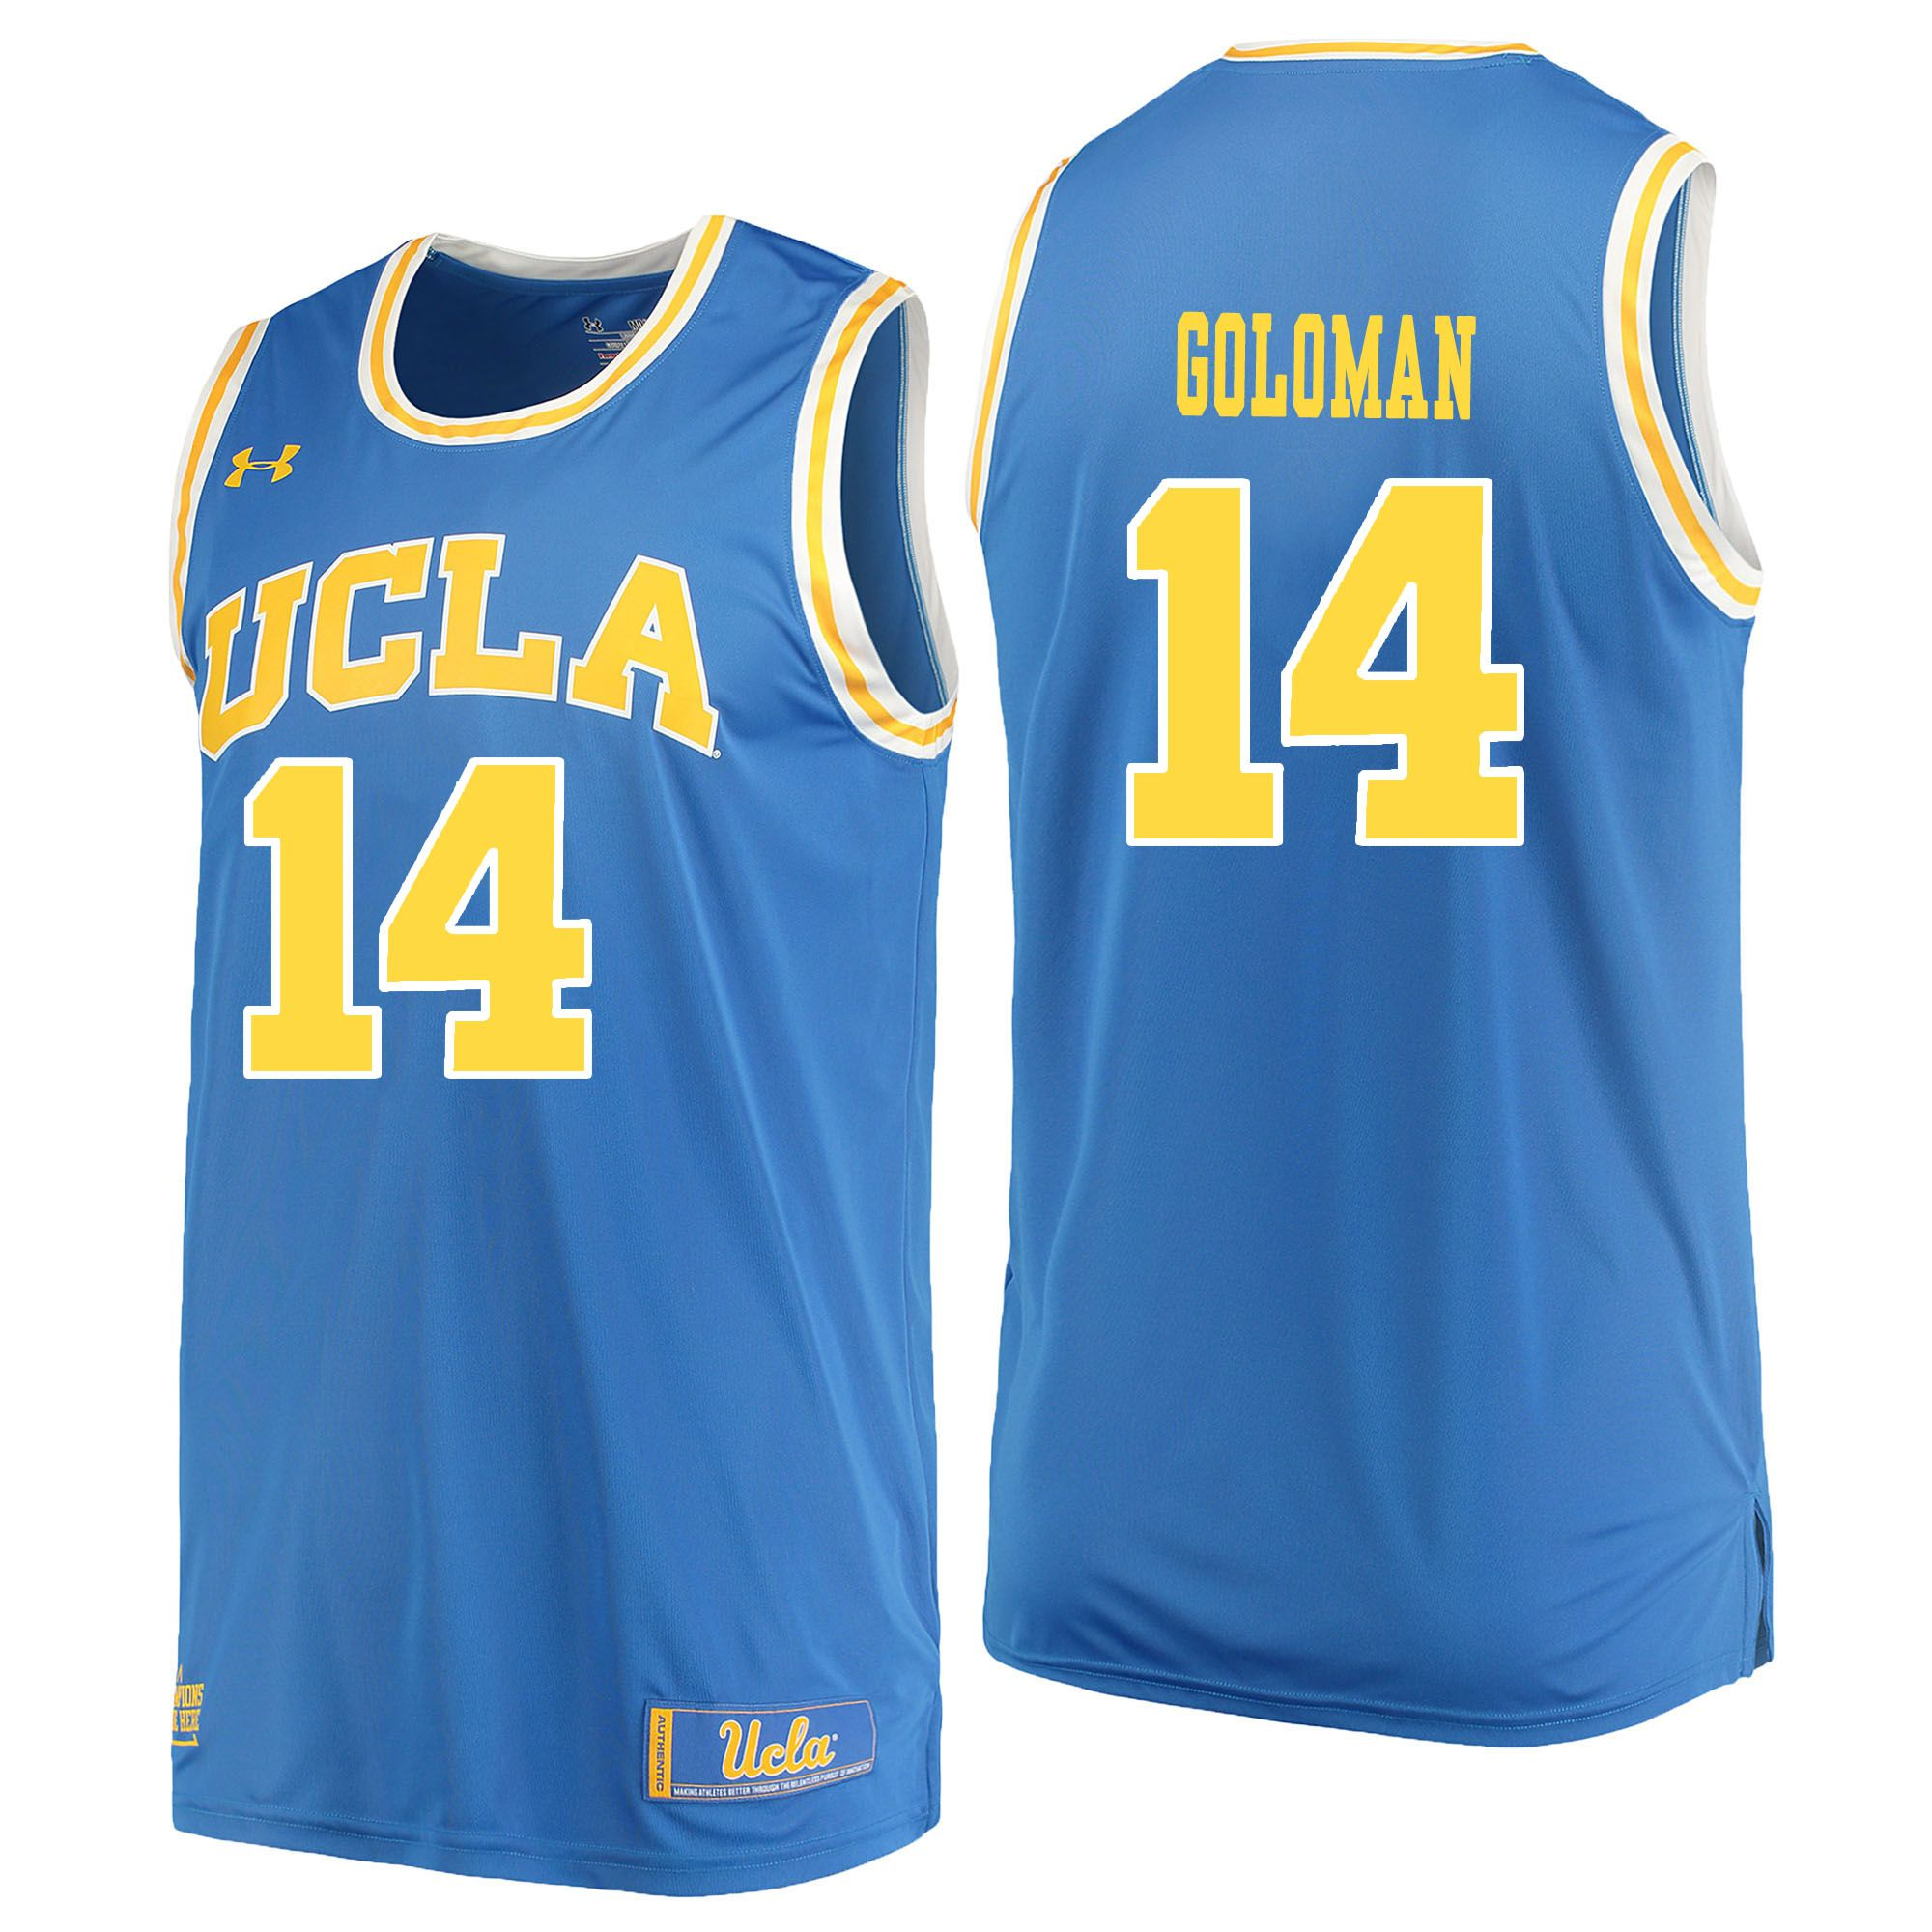 Men UCLA UA 14 Goloman Light Blue Customized NCAA Jerseys